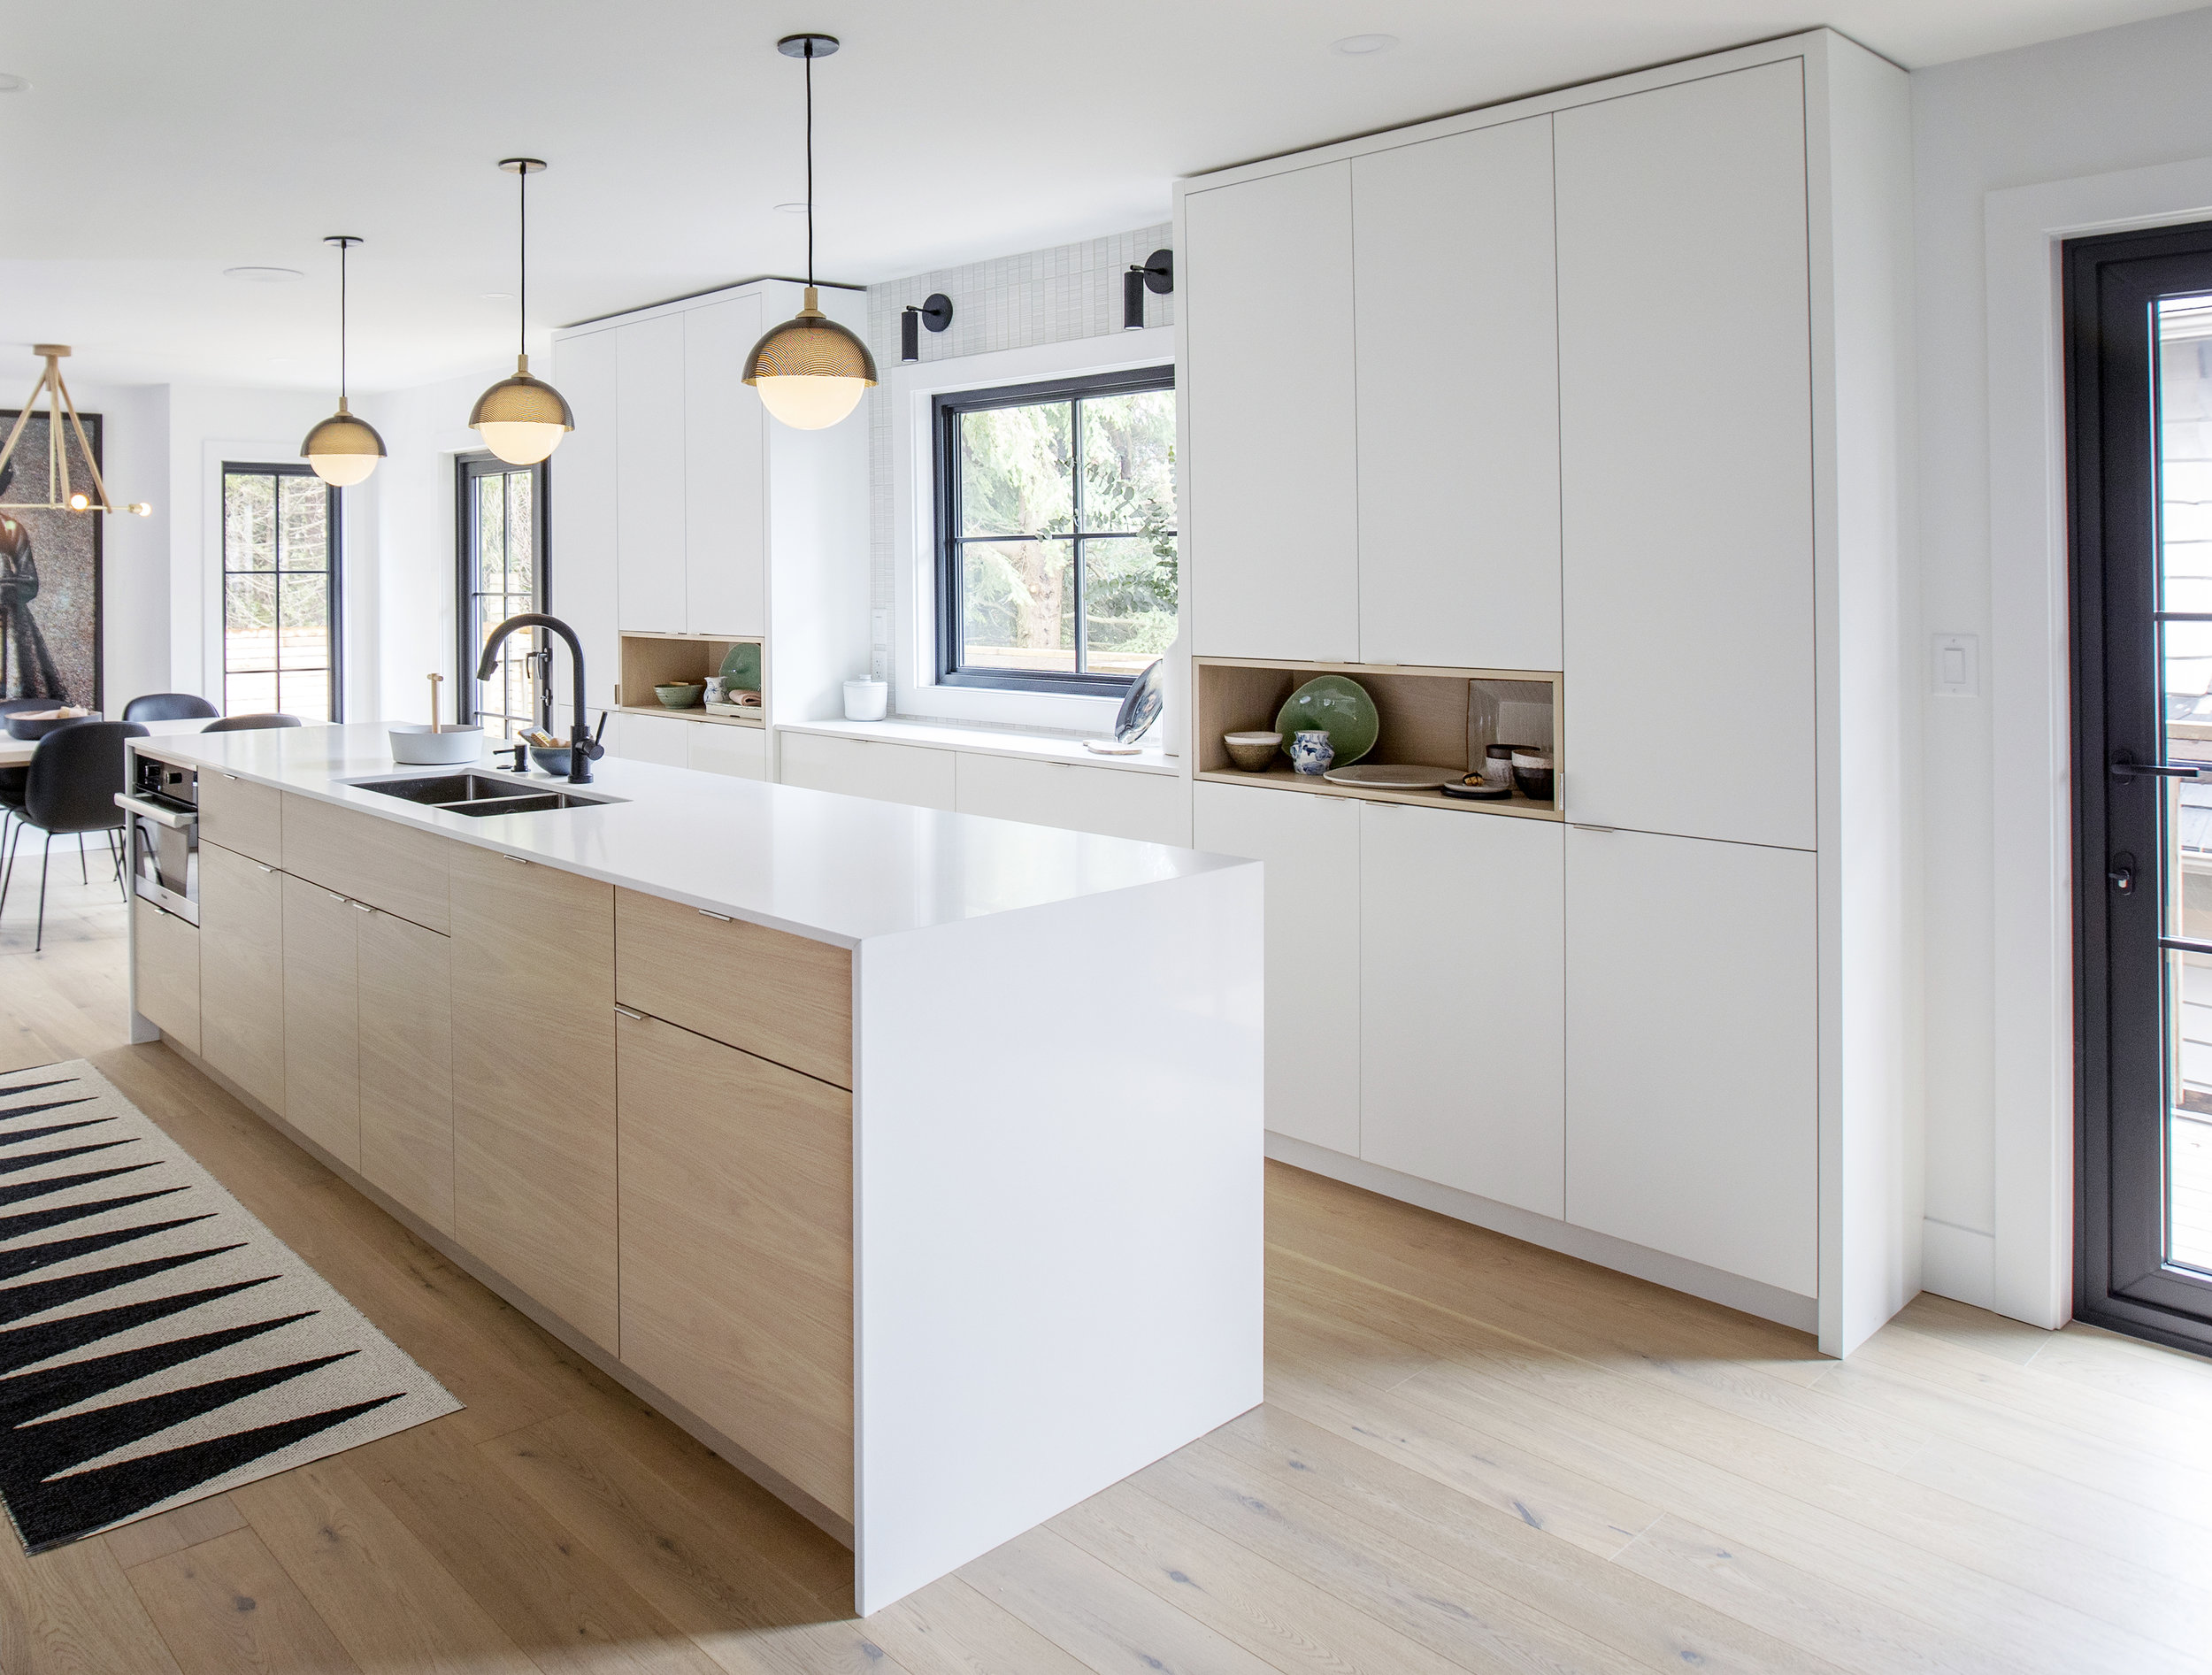 Kitchen area at Alderfield Place; modern countertops and beautiful light fixtures hang above the kitchen island.